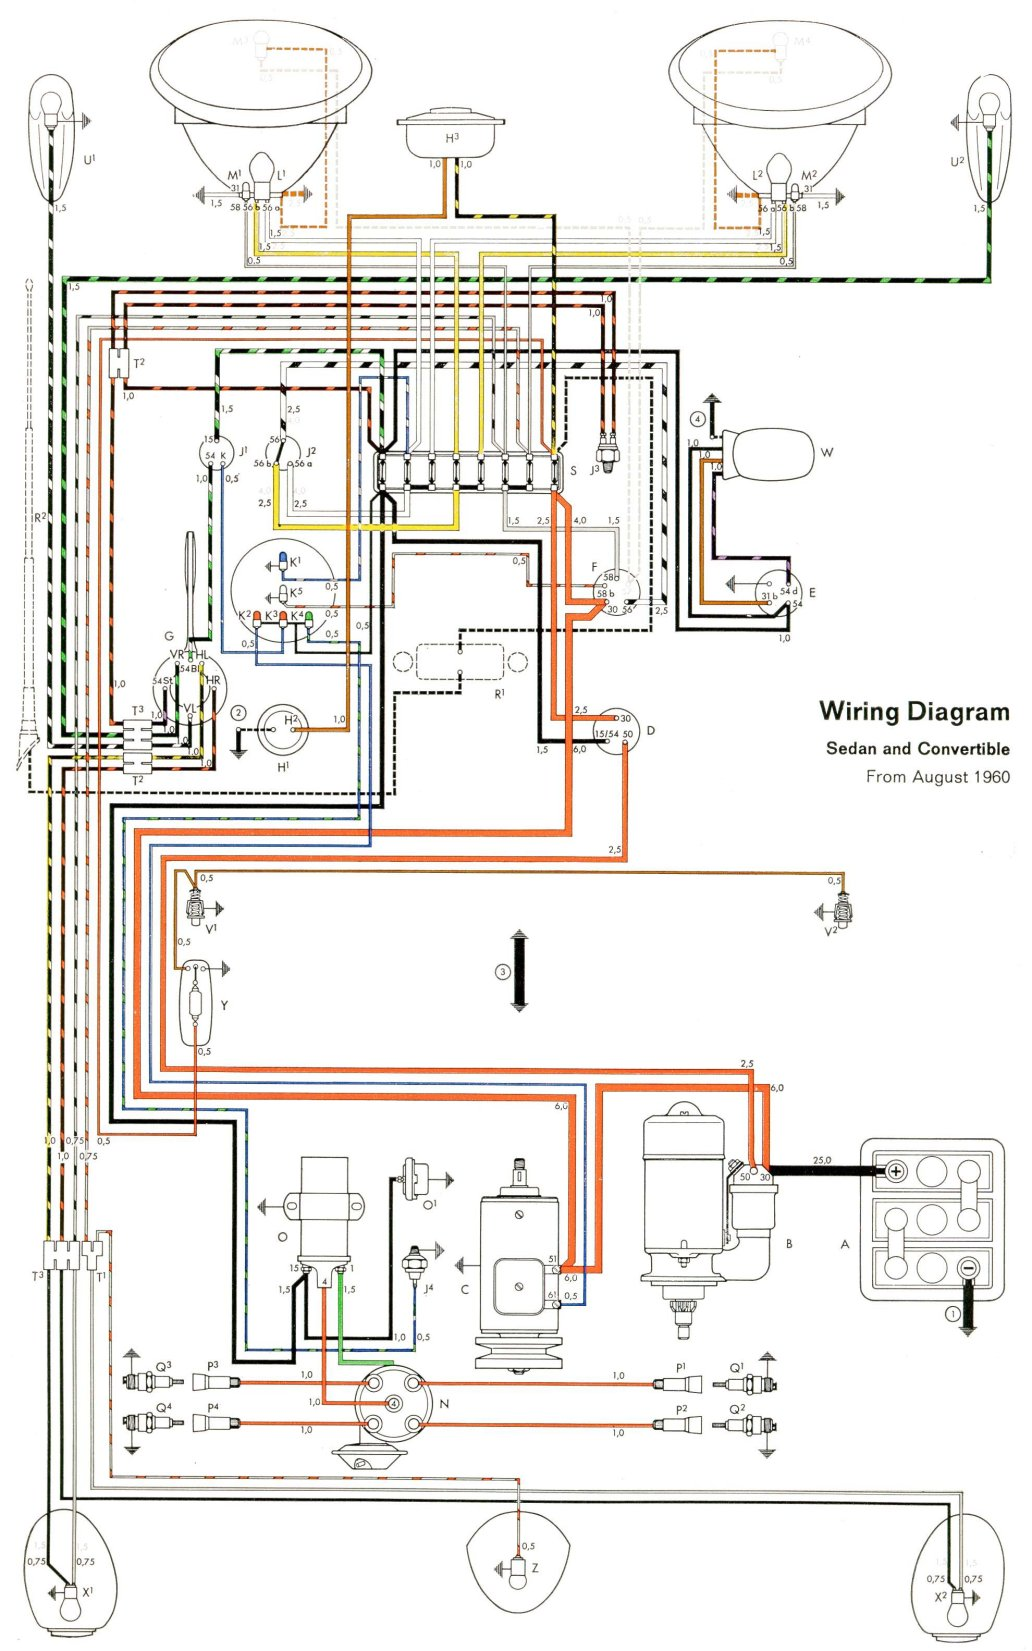 pljx wiring diagram beetle wiring diagram vw wiring diagram turn signal hazard warning com type wiring diagrams